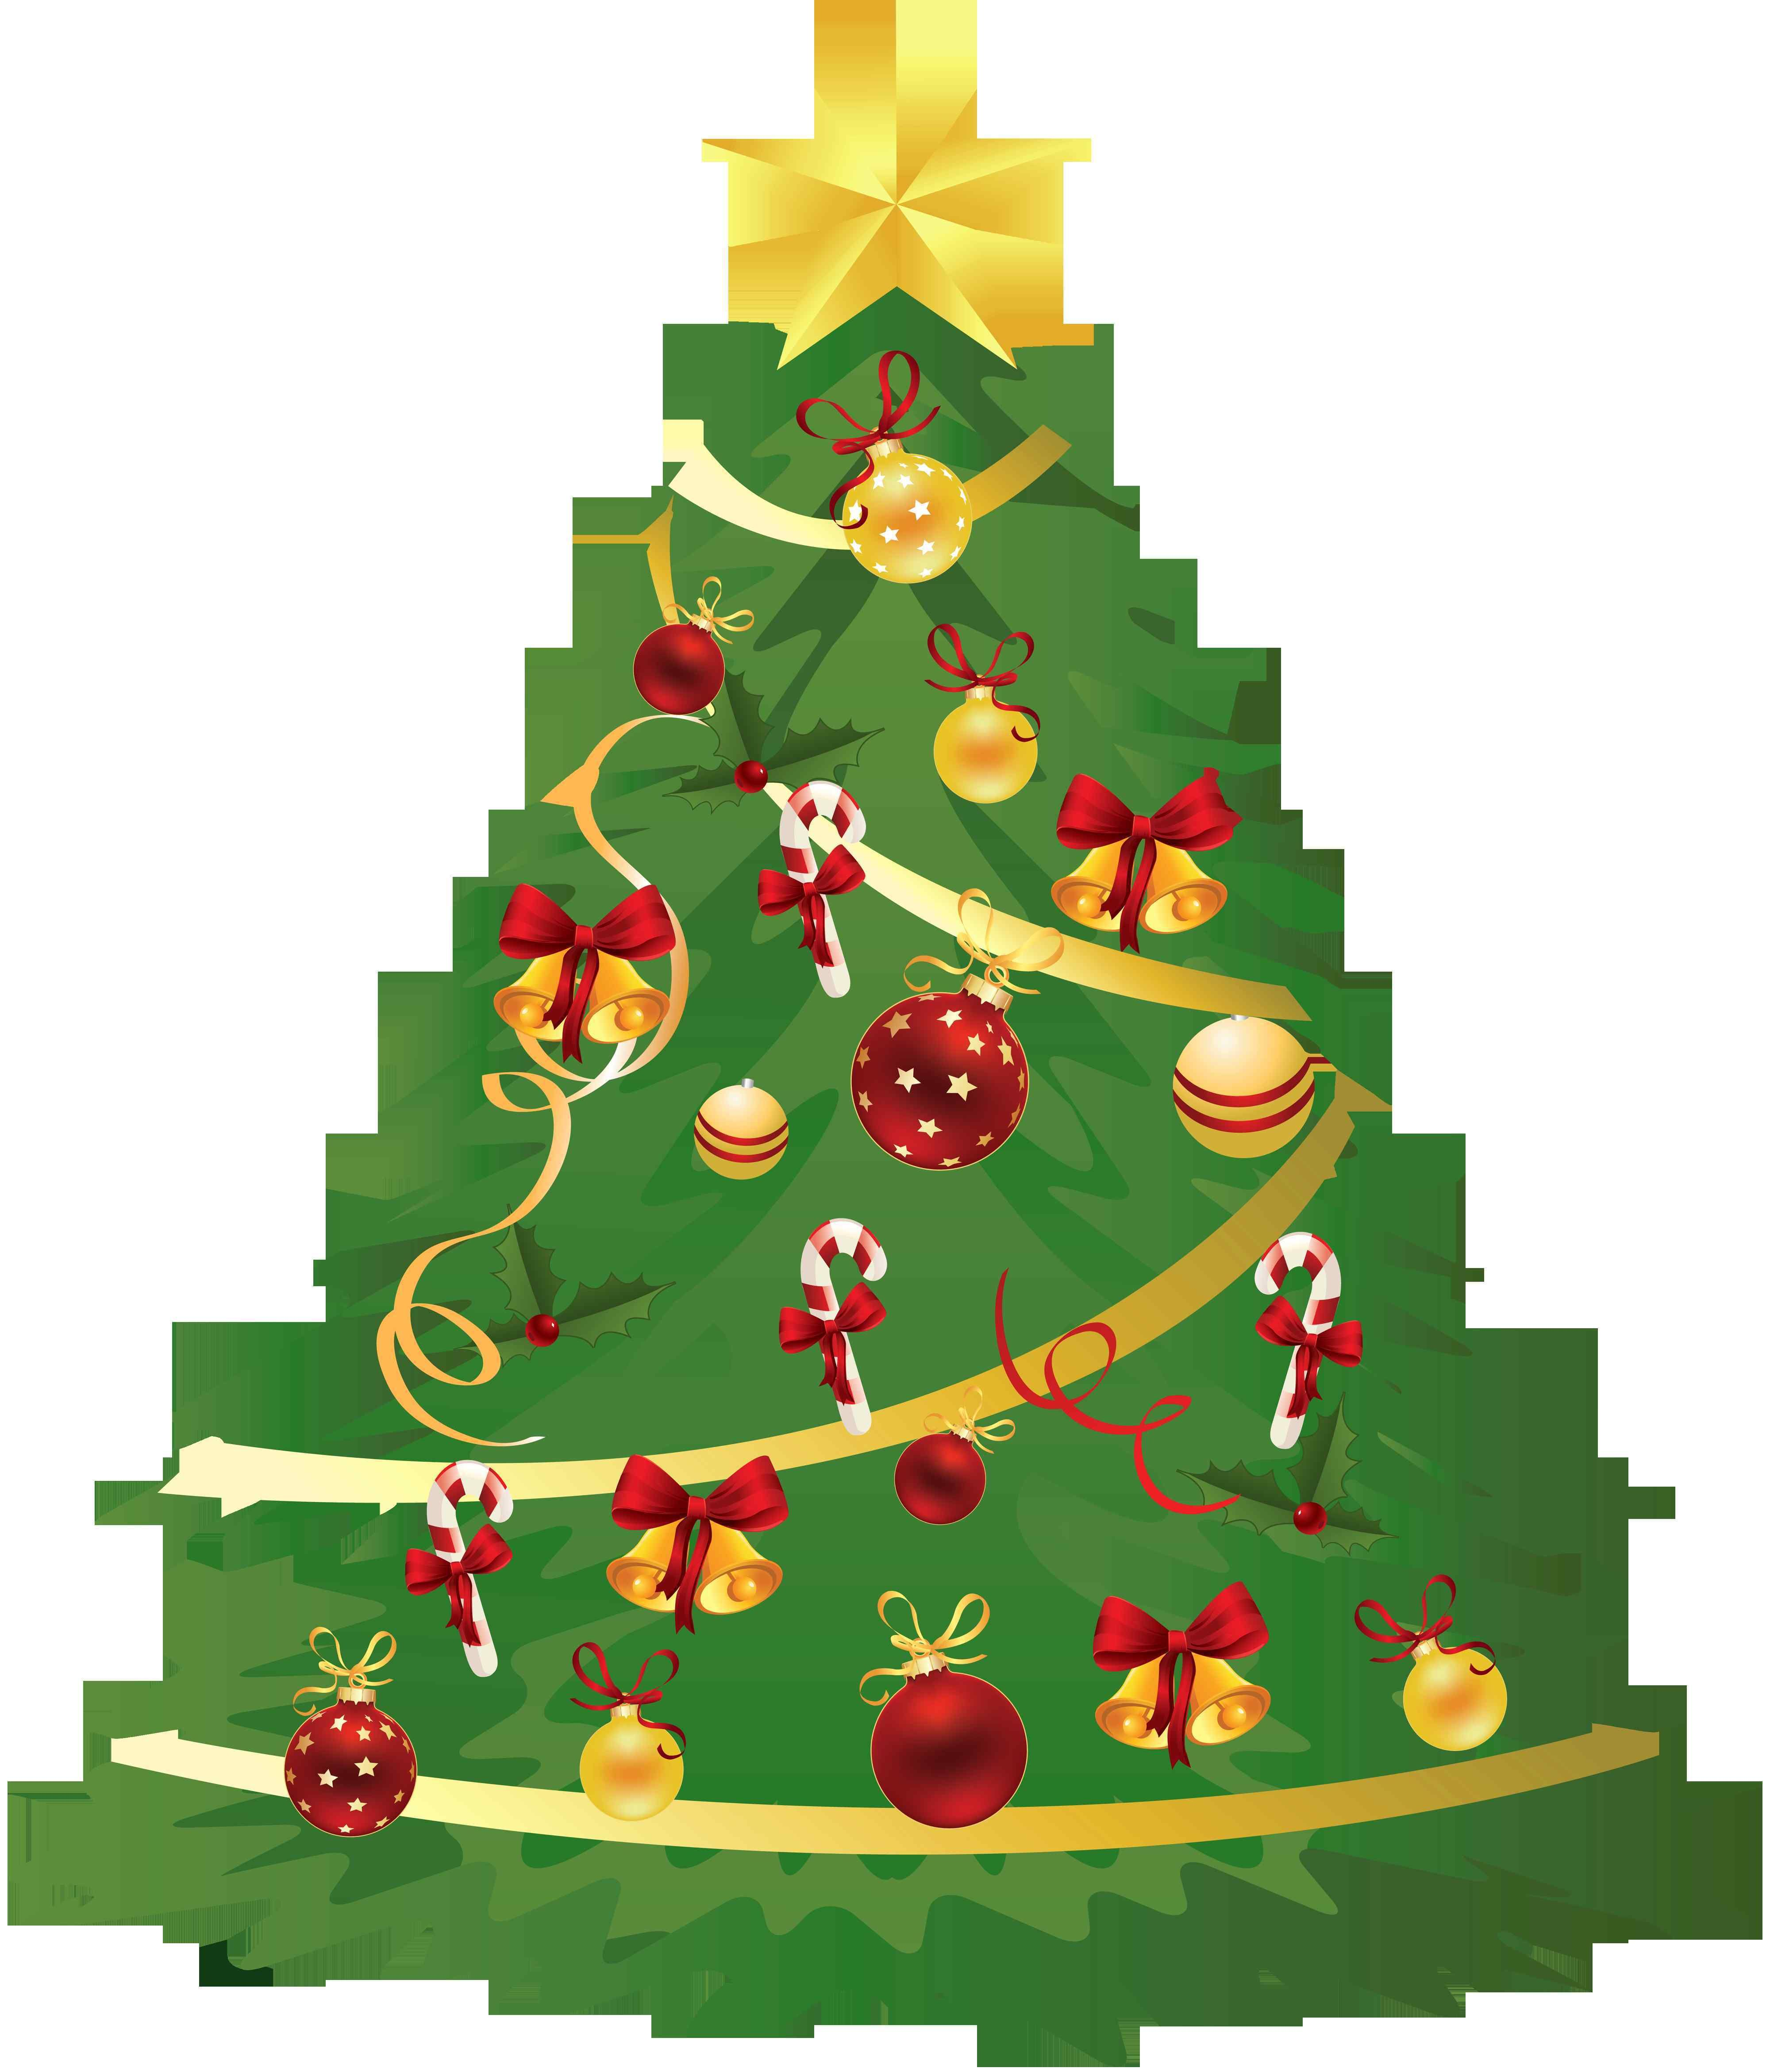 11 Fresh Christmas Tree With Presents Clip Art Prekhome Christmas Tree With Presents Christmas Tree Drawing Christmas Tree Clipart